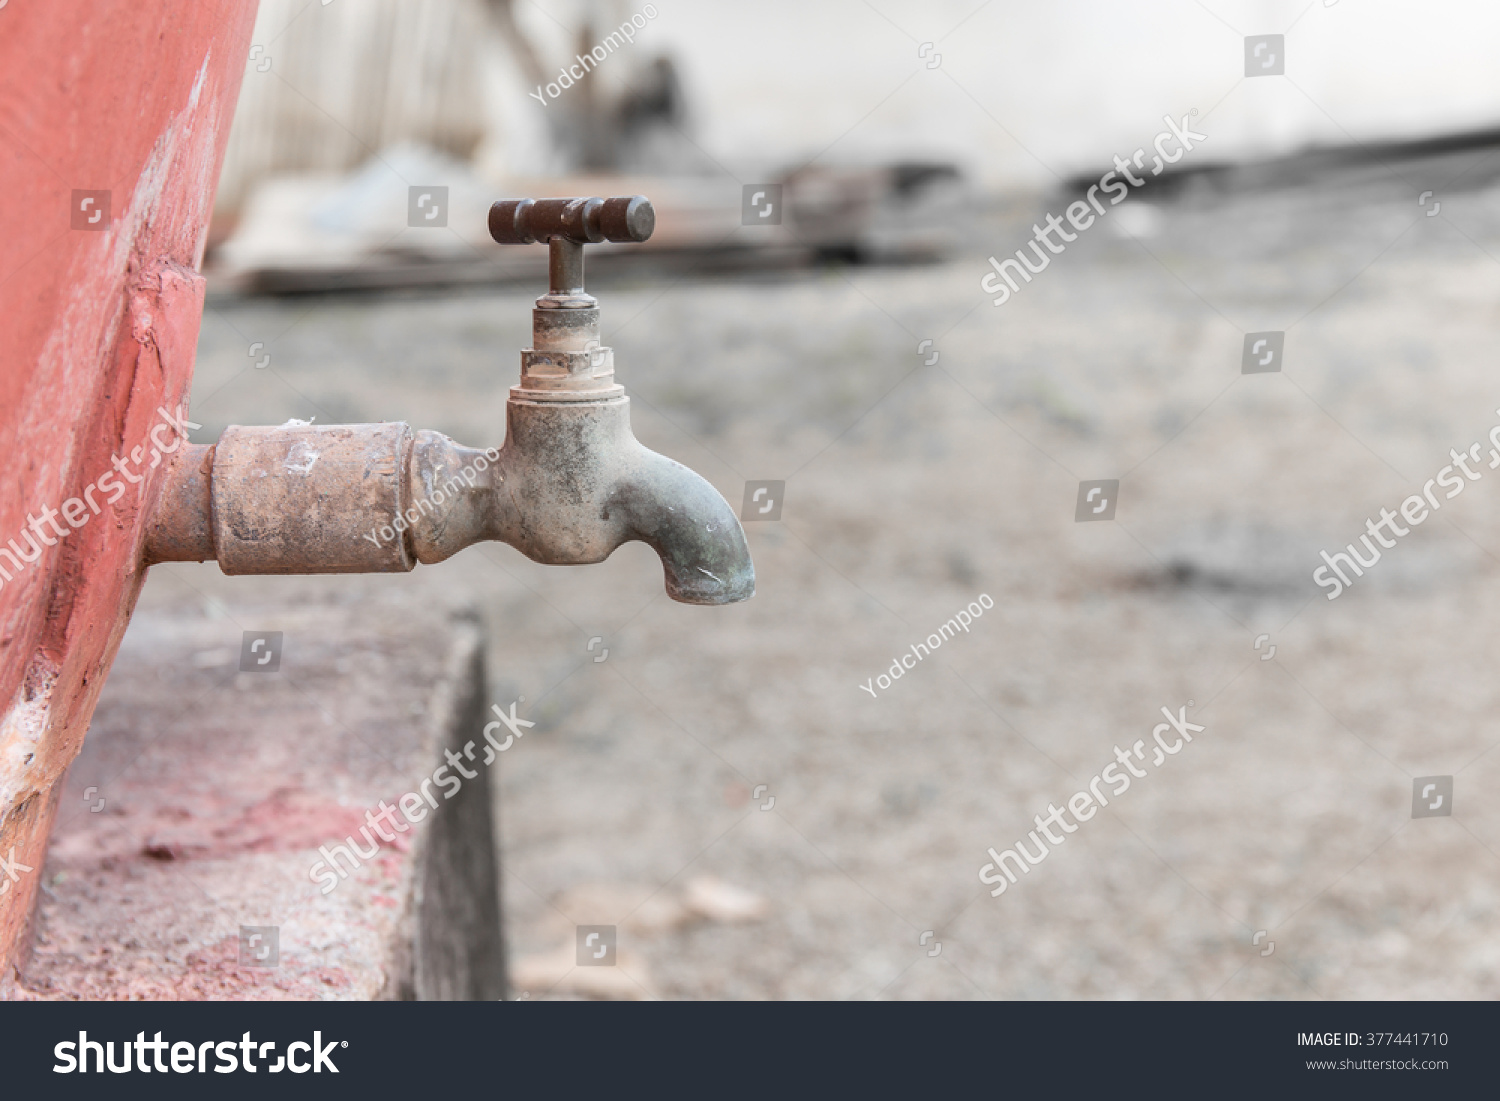 Old Rusty Faucet Stock Photo (Edit Now)- Shutterstock